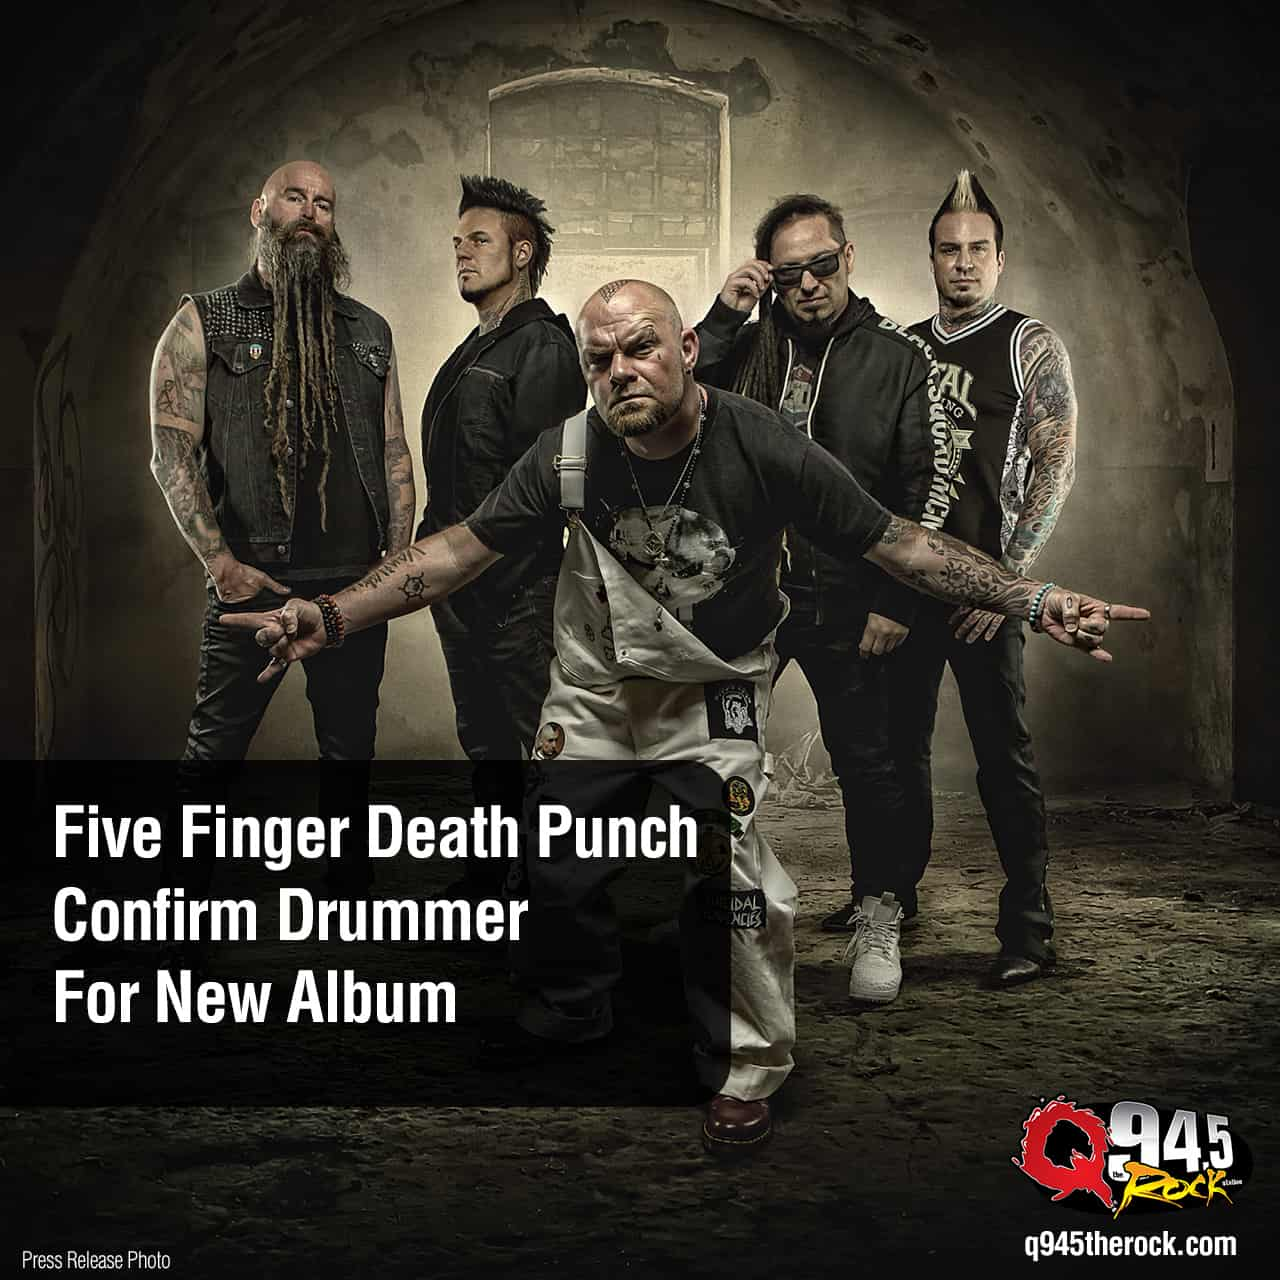 Five Finger Death Punch Confirm Drummer For New Album